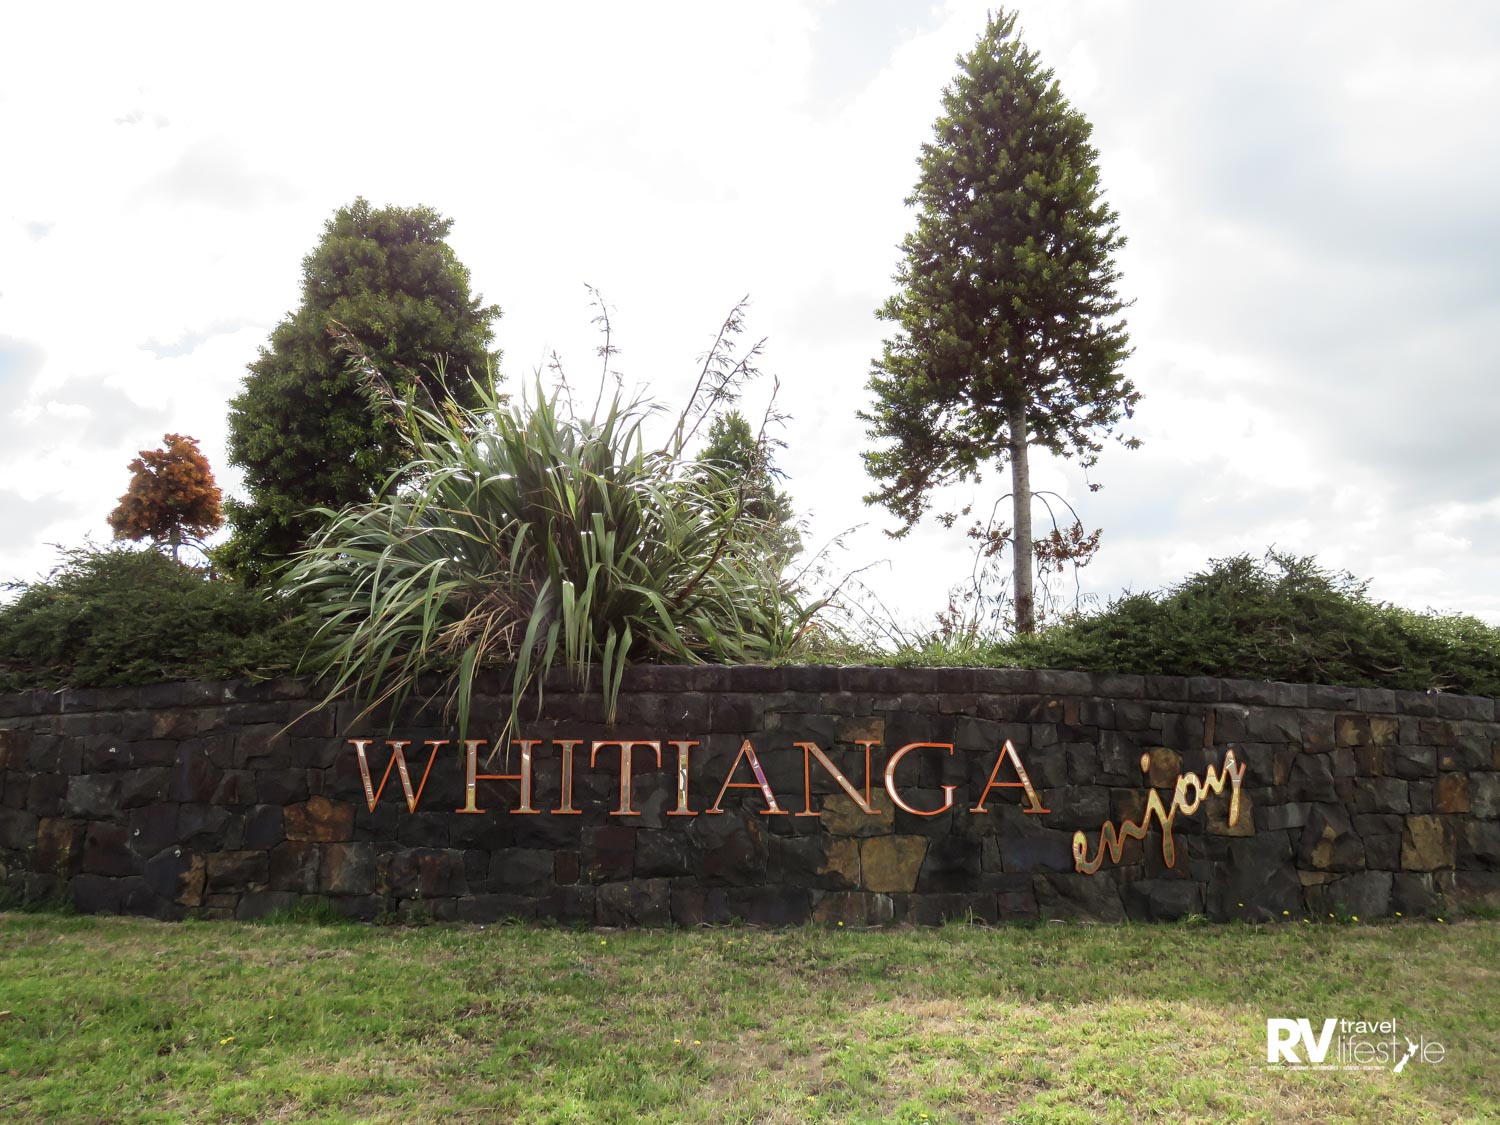 What a welcome – Whitianga's entrance signage